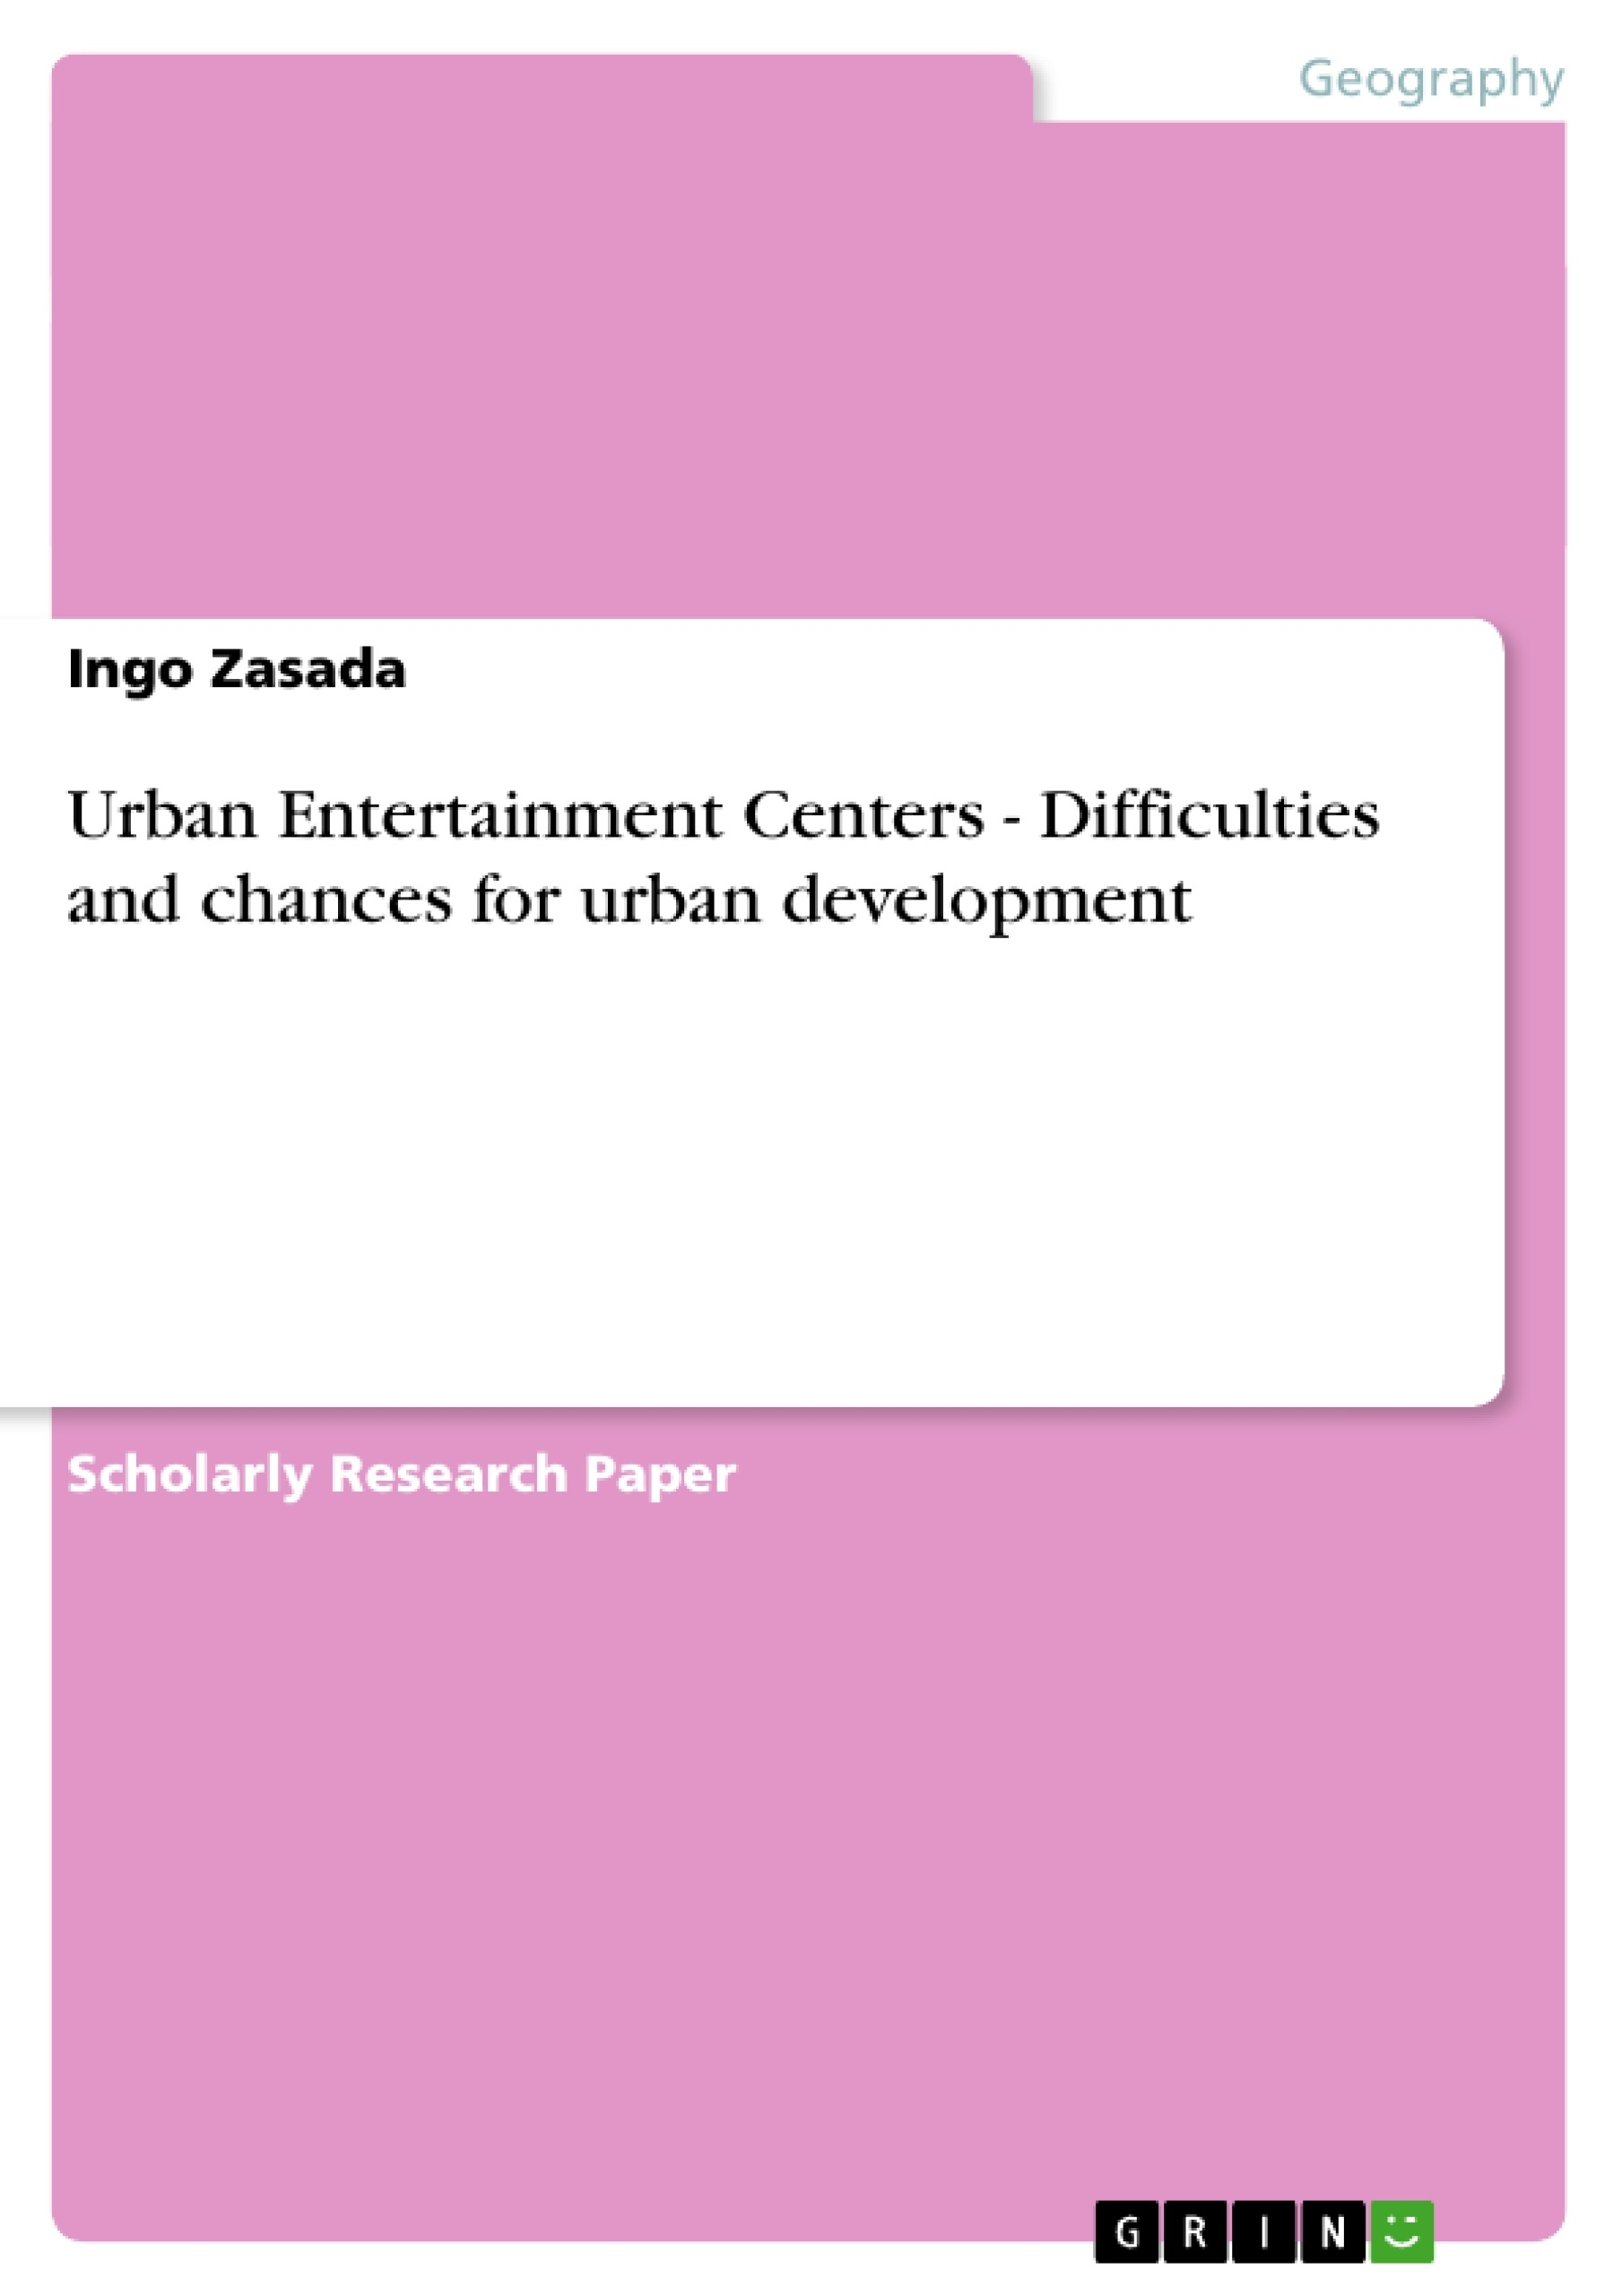 Title: Urban Entertainment Centers -  Difficulties and chances for urban development